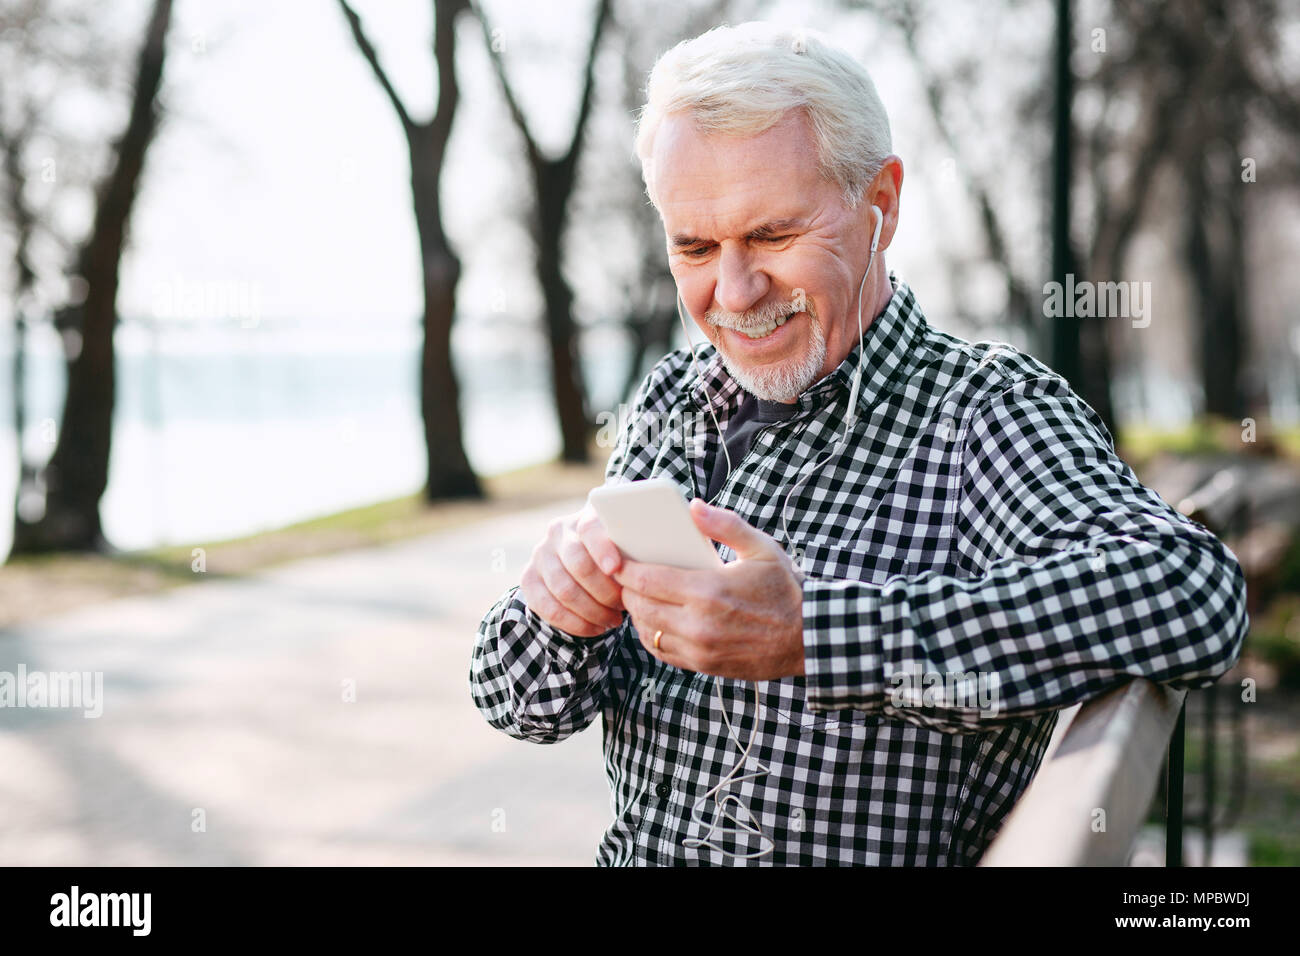 Merry senior man choosing playlist - Stock Image